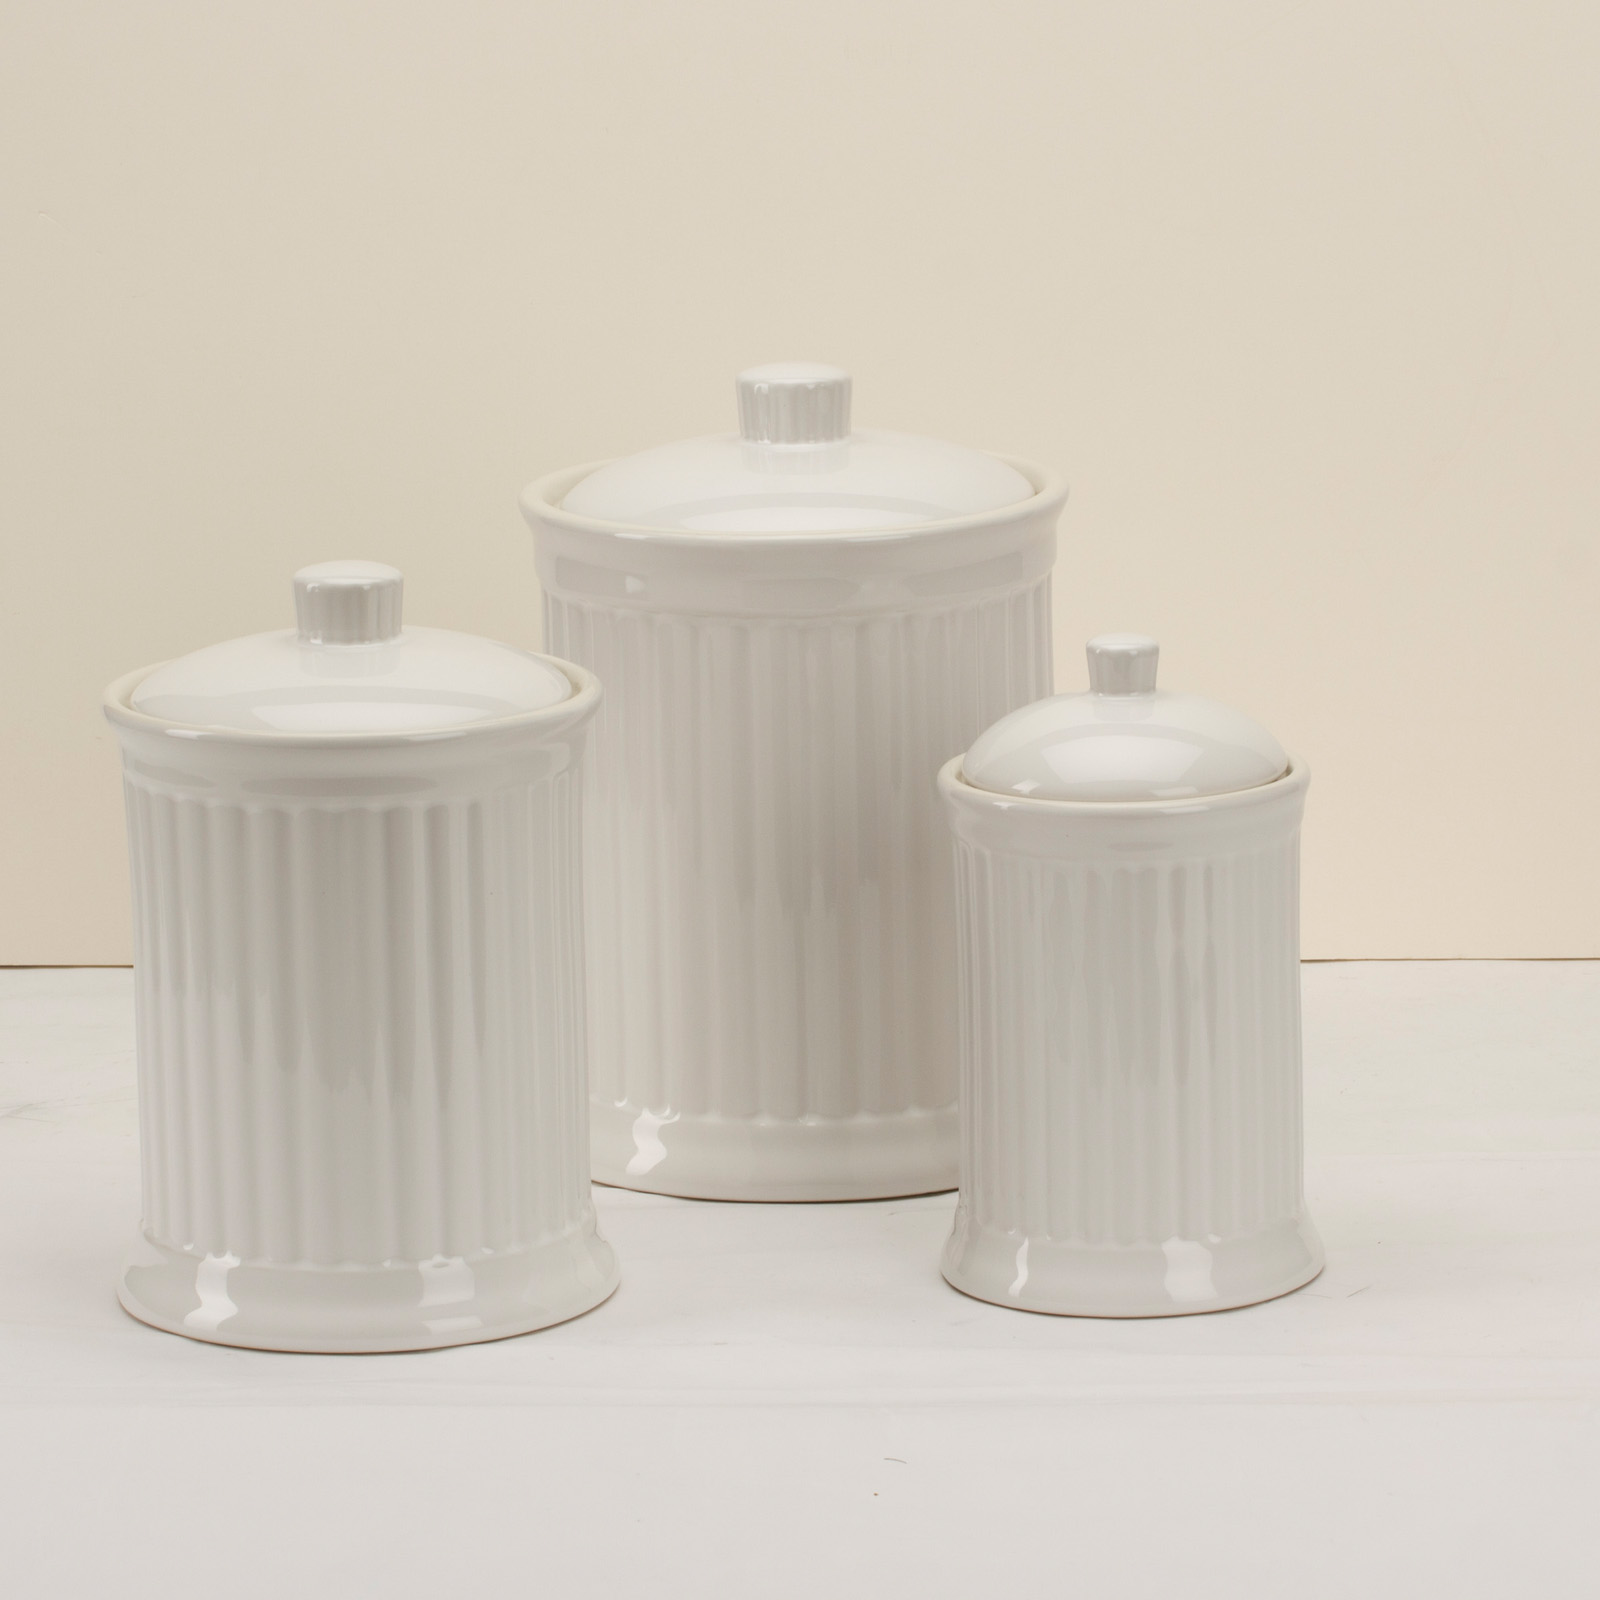 omni simsbury canisters set of 3 white at hayneedle